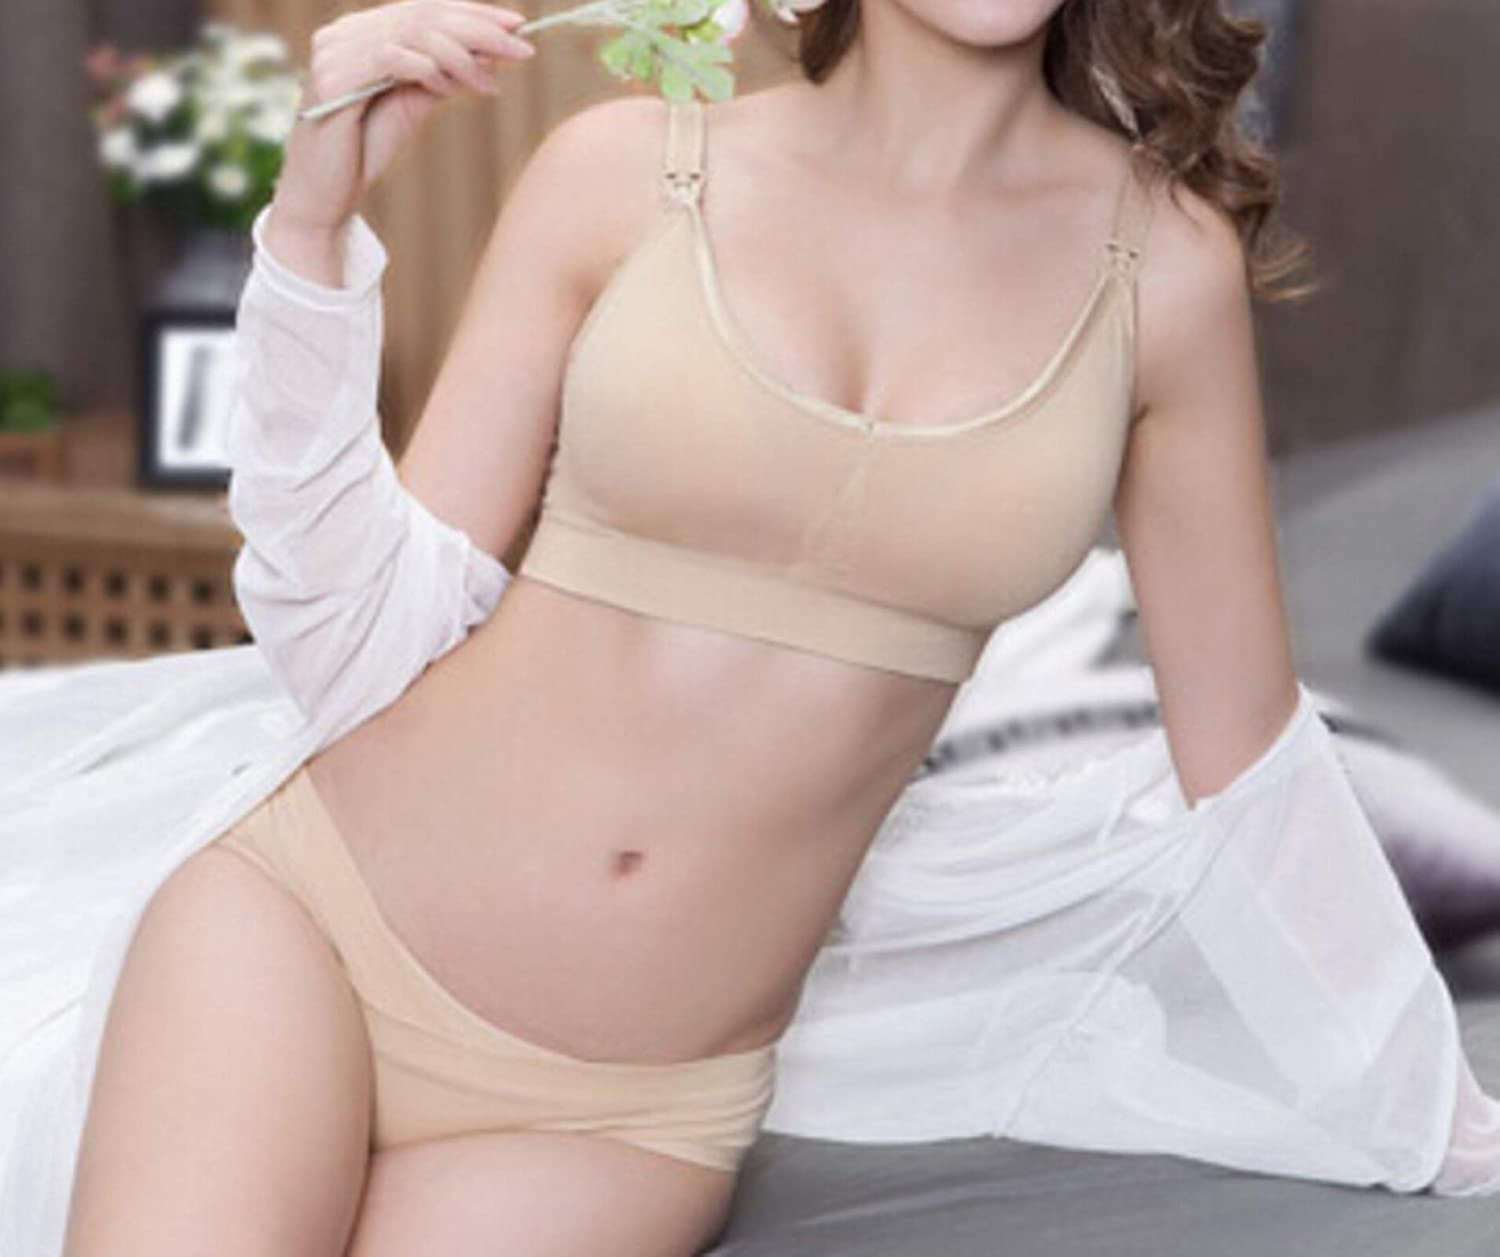 Adisaer-Womens Full Cup Maternity Nursing Bra Nylon Plain Color No-Wired Wireless with Removable Pads